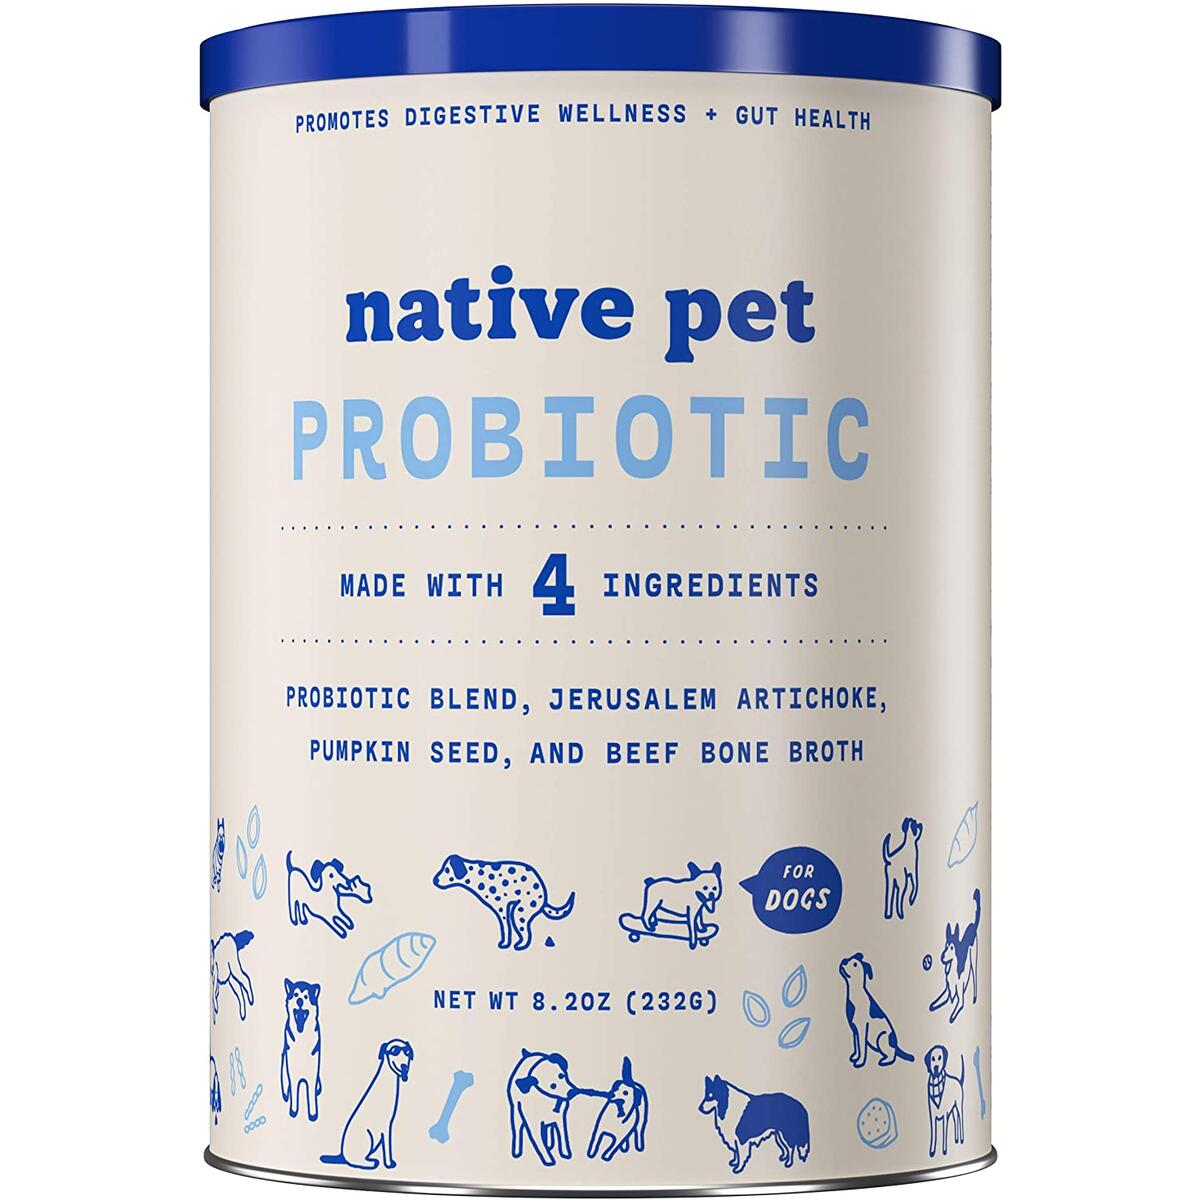 NATIVE PET PROBIOTIC FOR DOGS -- Our probiotic  supplement is the digestive support your dog needs! It manages healthy bacteria in the gut flora and includes 4 strains of probiotics, 2 types of prebiotic fiber, and savory beef bone broth for flavor!